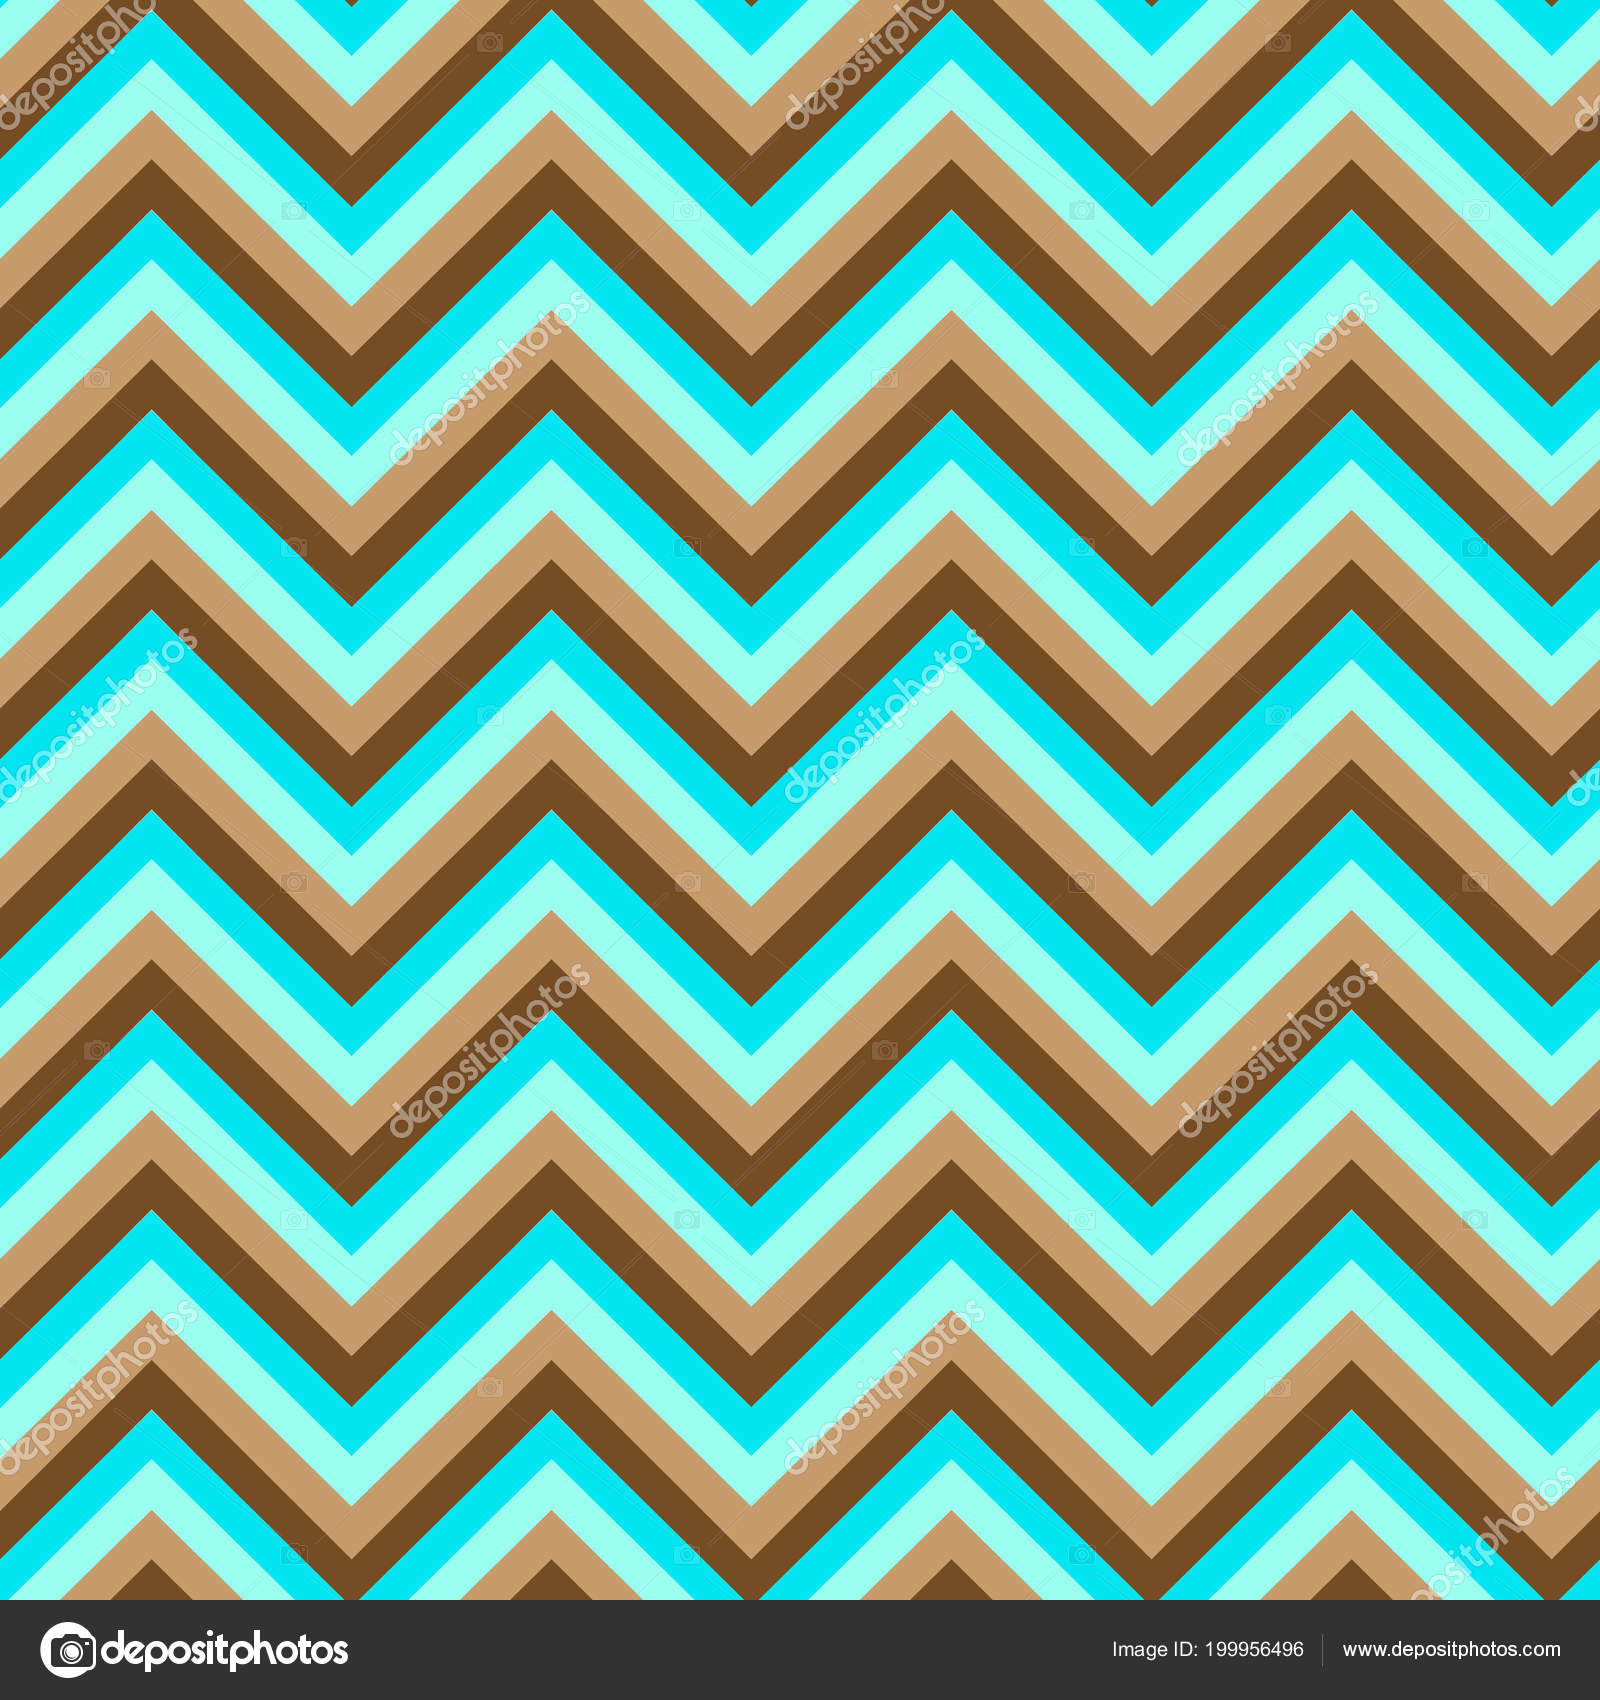 Chevron Blue And Brown Seamless Pattern Vector N I R V A N A